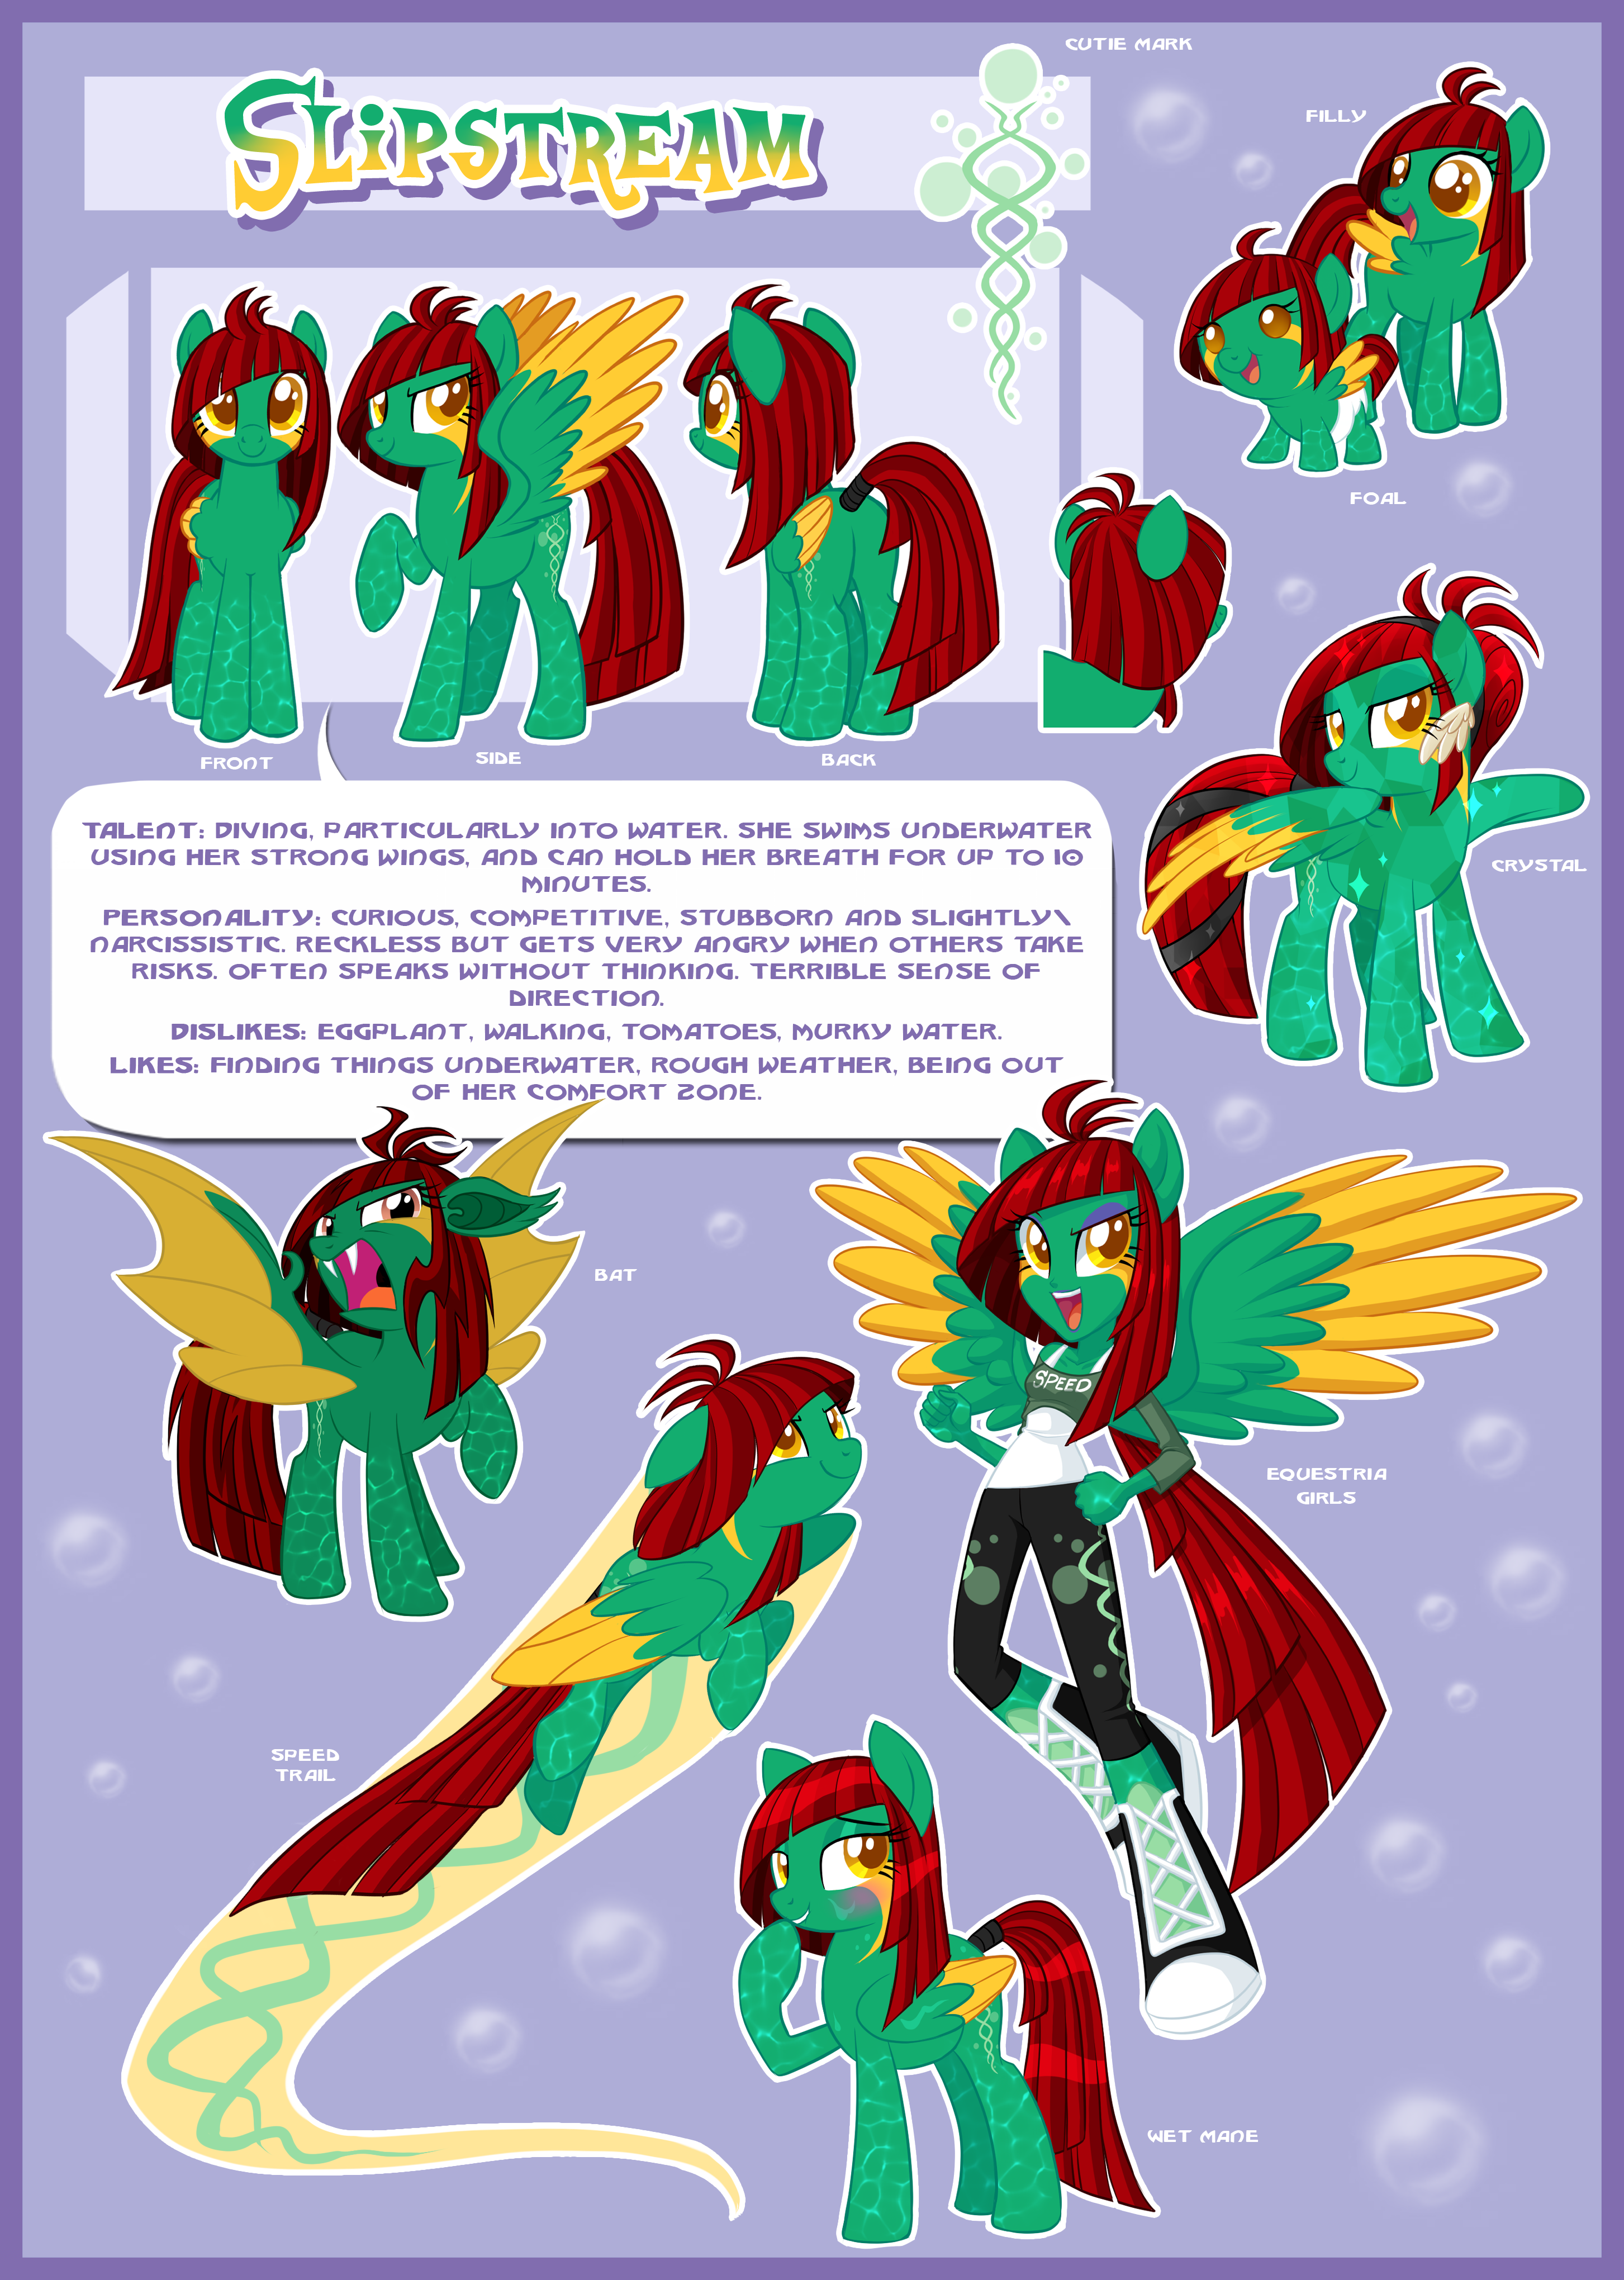 Slipstream Ultimate Reference Guide By Centchi On DeviantArt